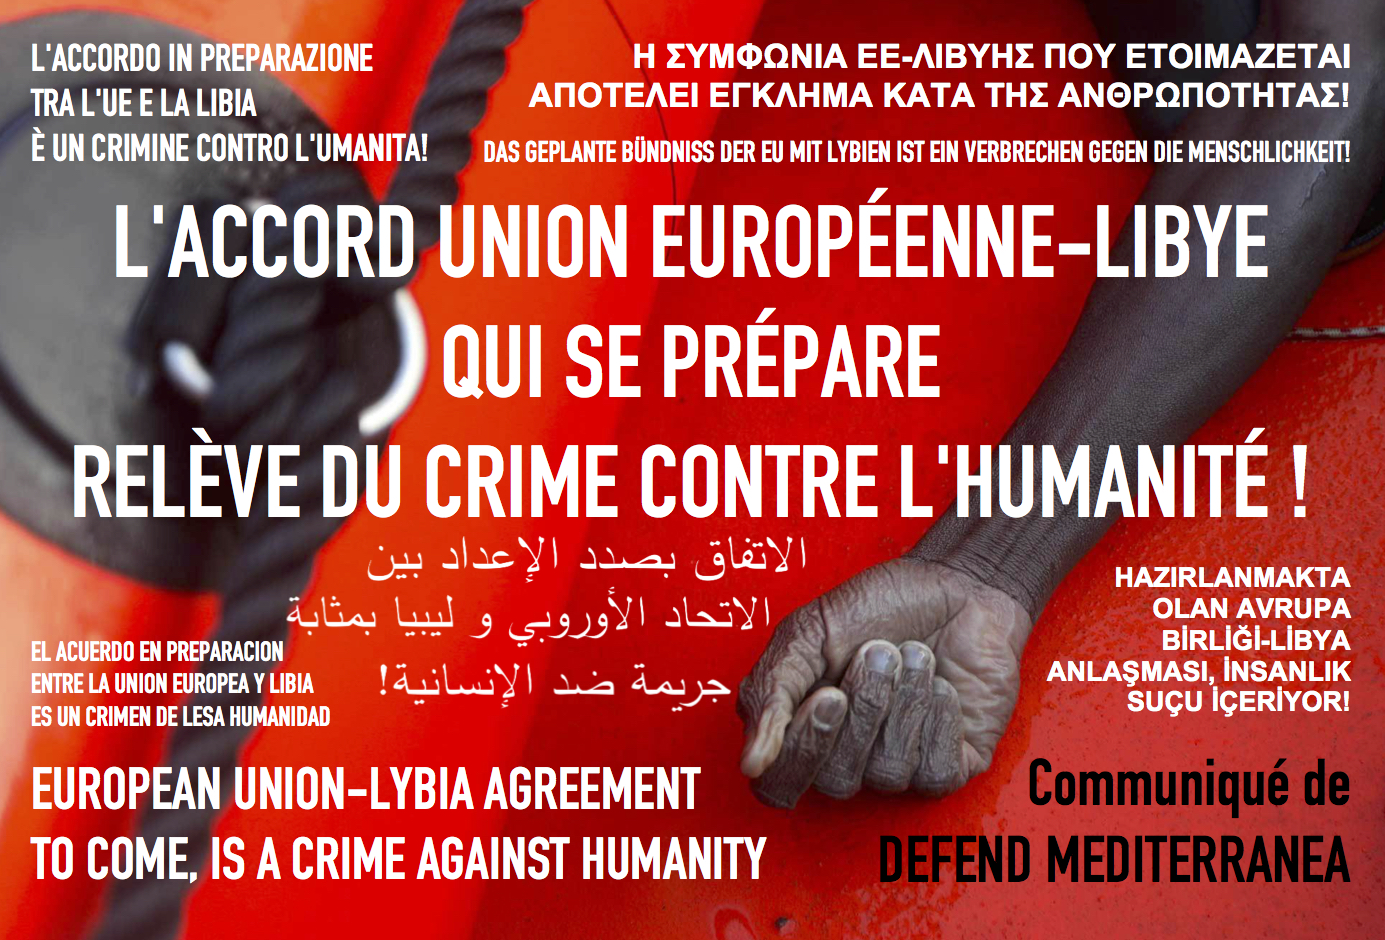 DEFEND MEDITERRANEA : « l'accord UE-Libye relève du crime contre l'humanité ! » dans - BILLET - DERISION - HUMOUR - MORALE accord-union-europenne-libye-defend-mediterranea-europe-antifa-cstar